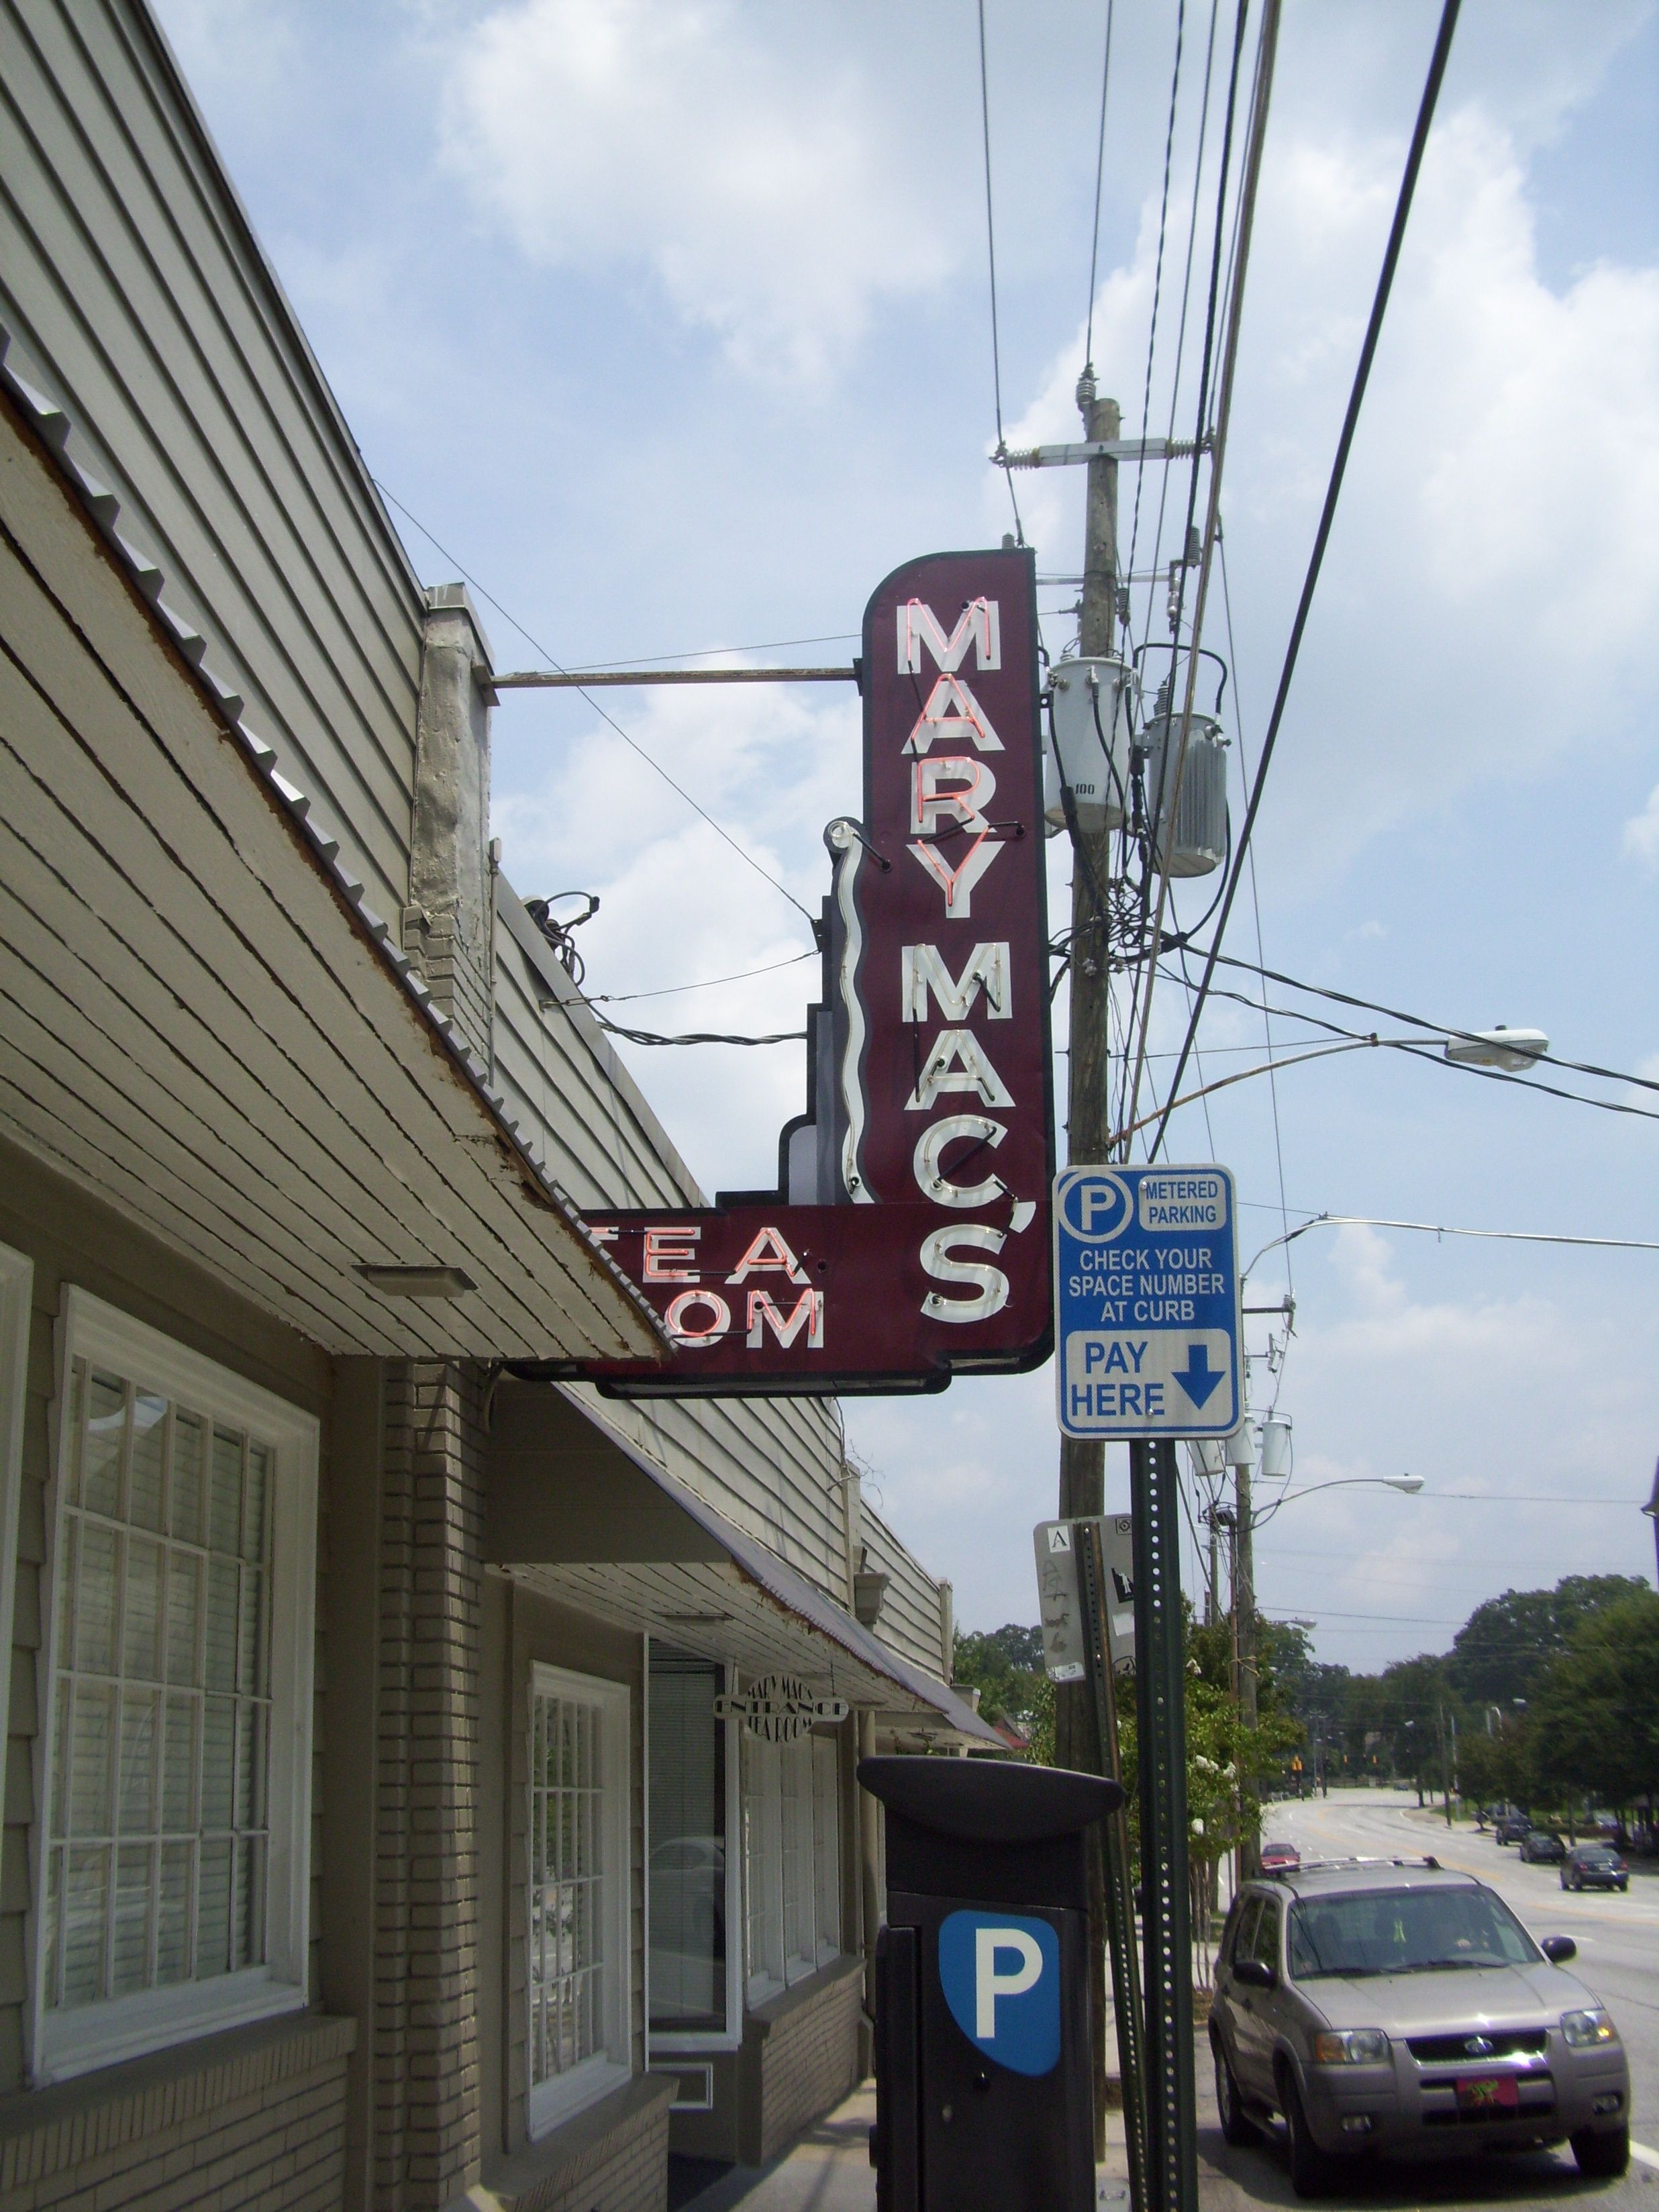 Mary Mac S Tearoom In Atlanta Georgia The Food Is As Good As The History Is Interesting Walls Are Packed With P Best Places To Eat Cool Restaurant Tea Room